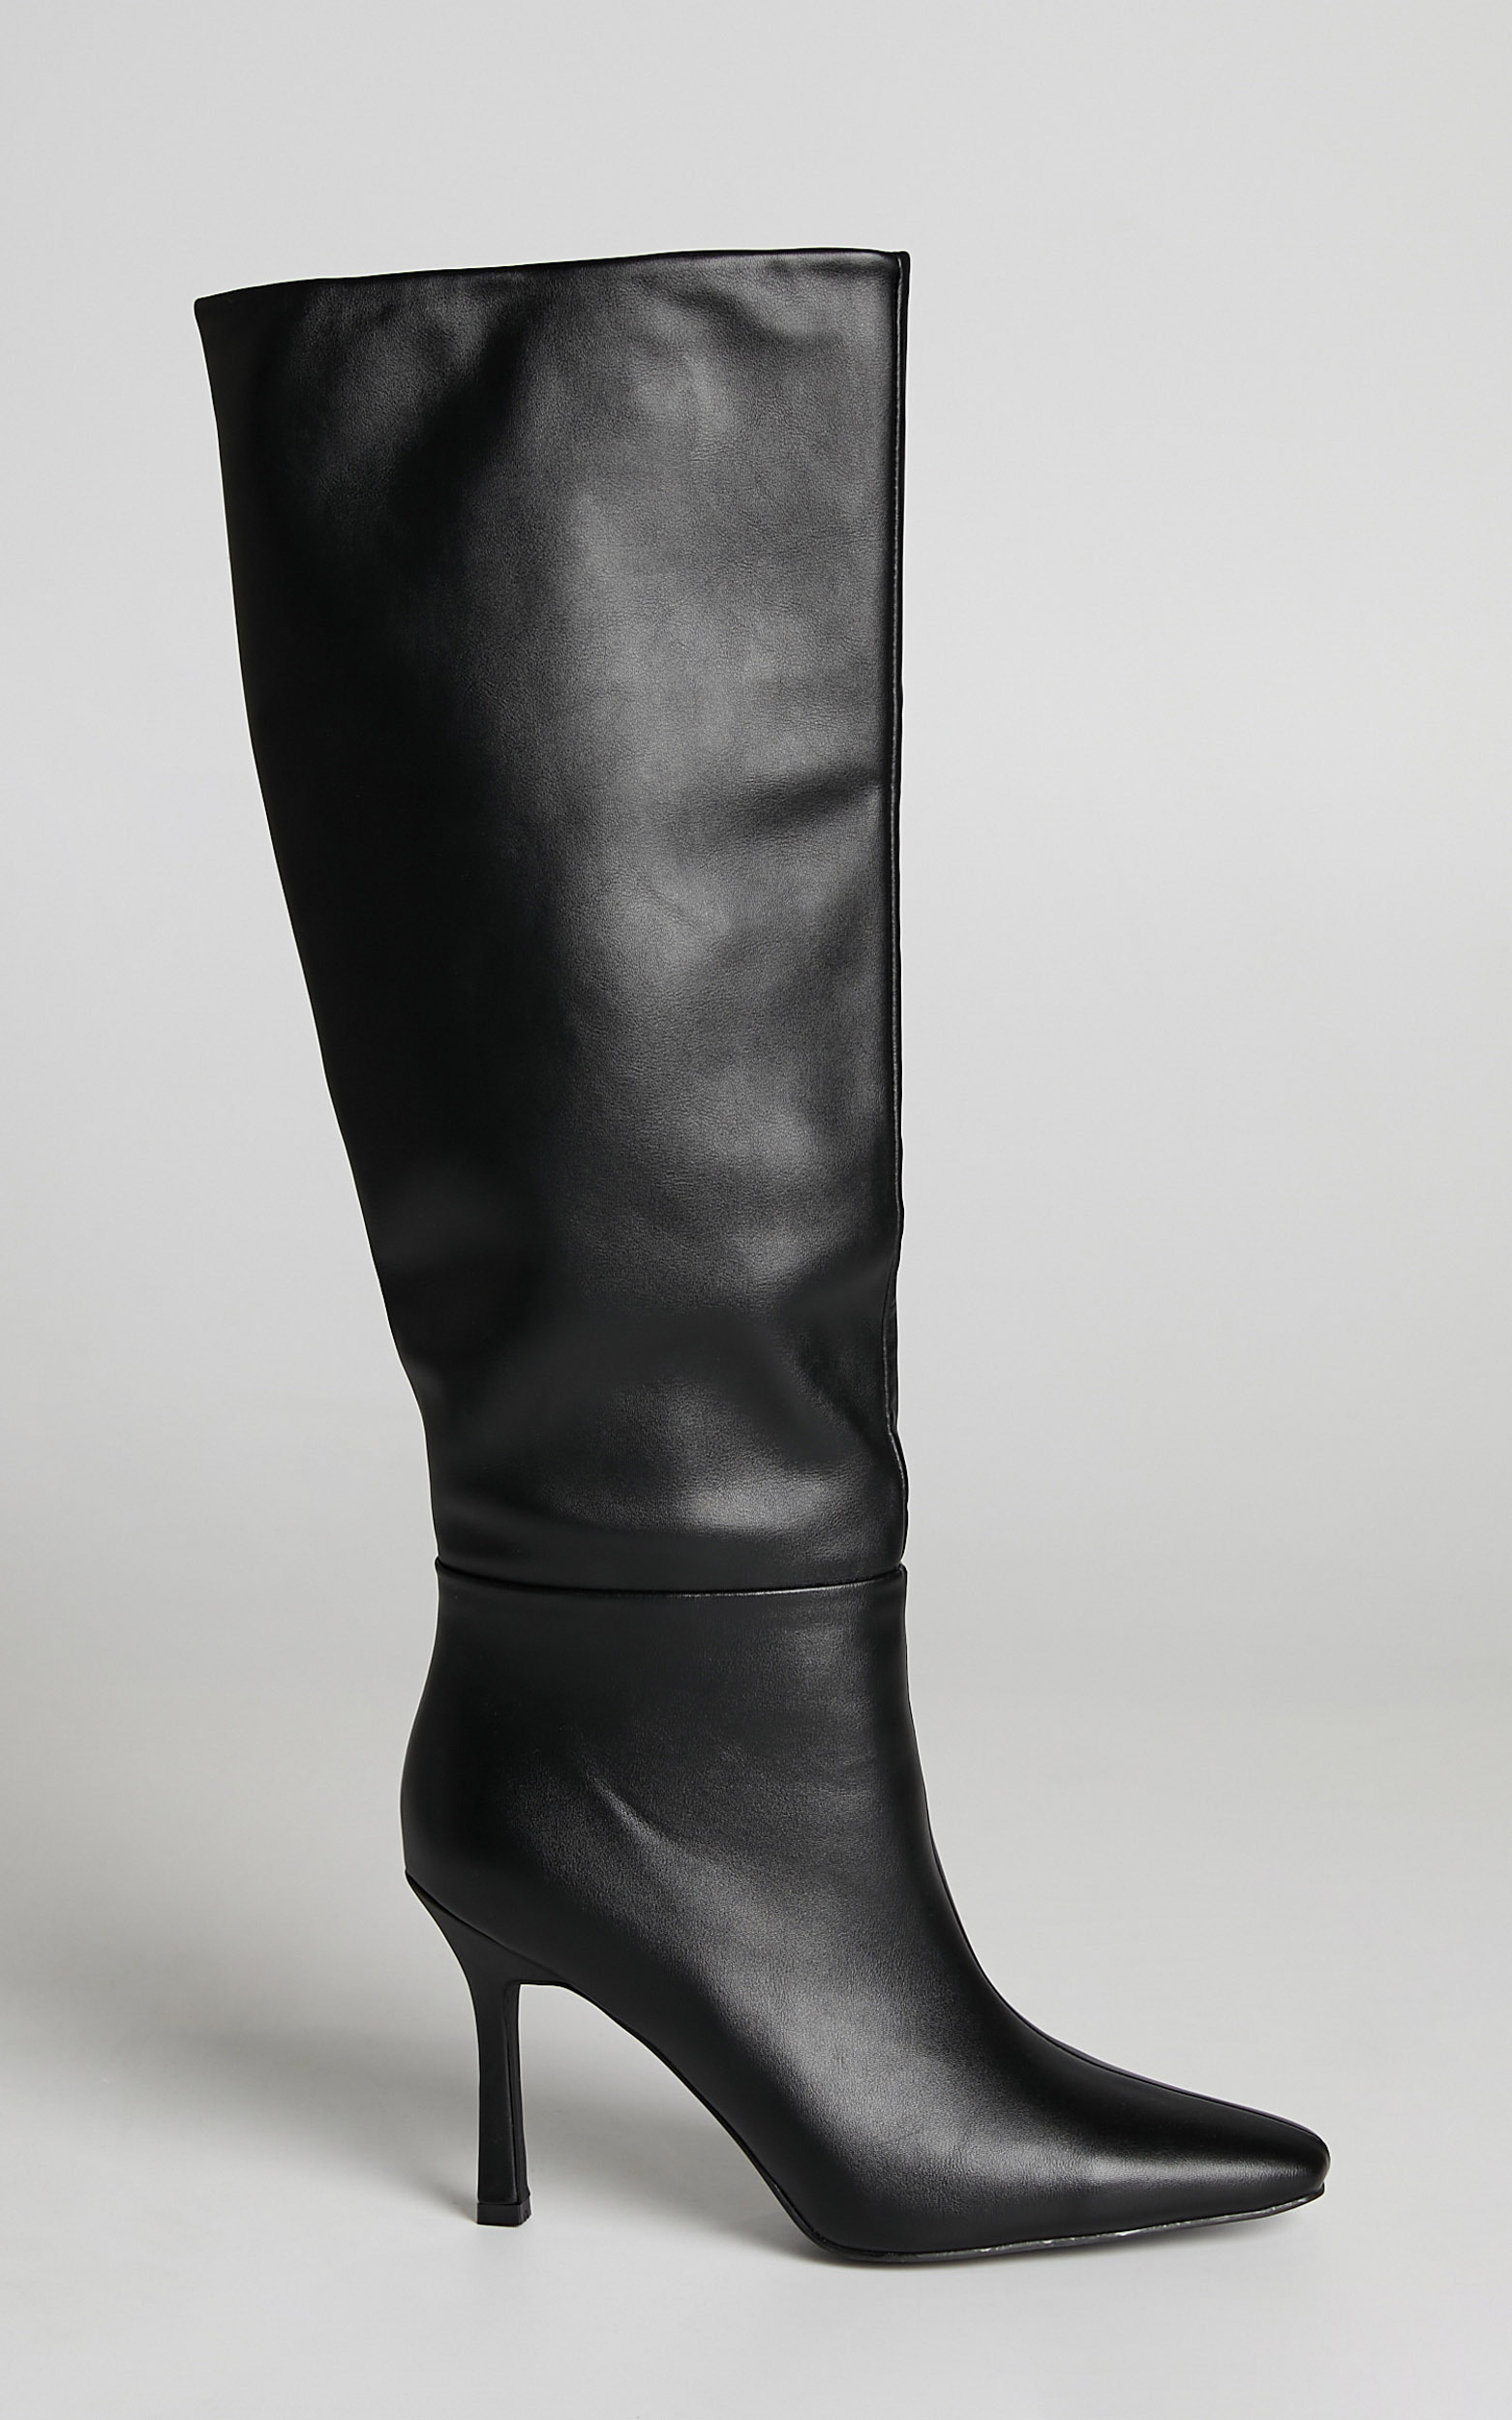 Billini - Whitaker Boots in Black - 05, BLK1, hi-res image number null